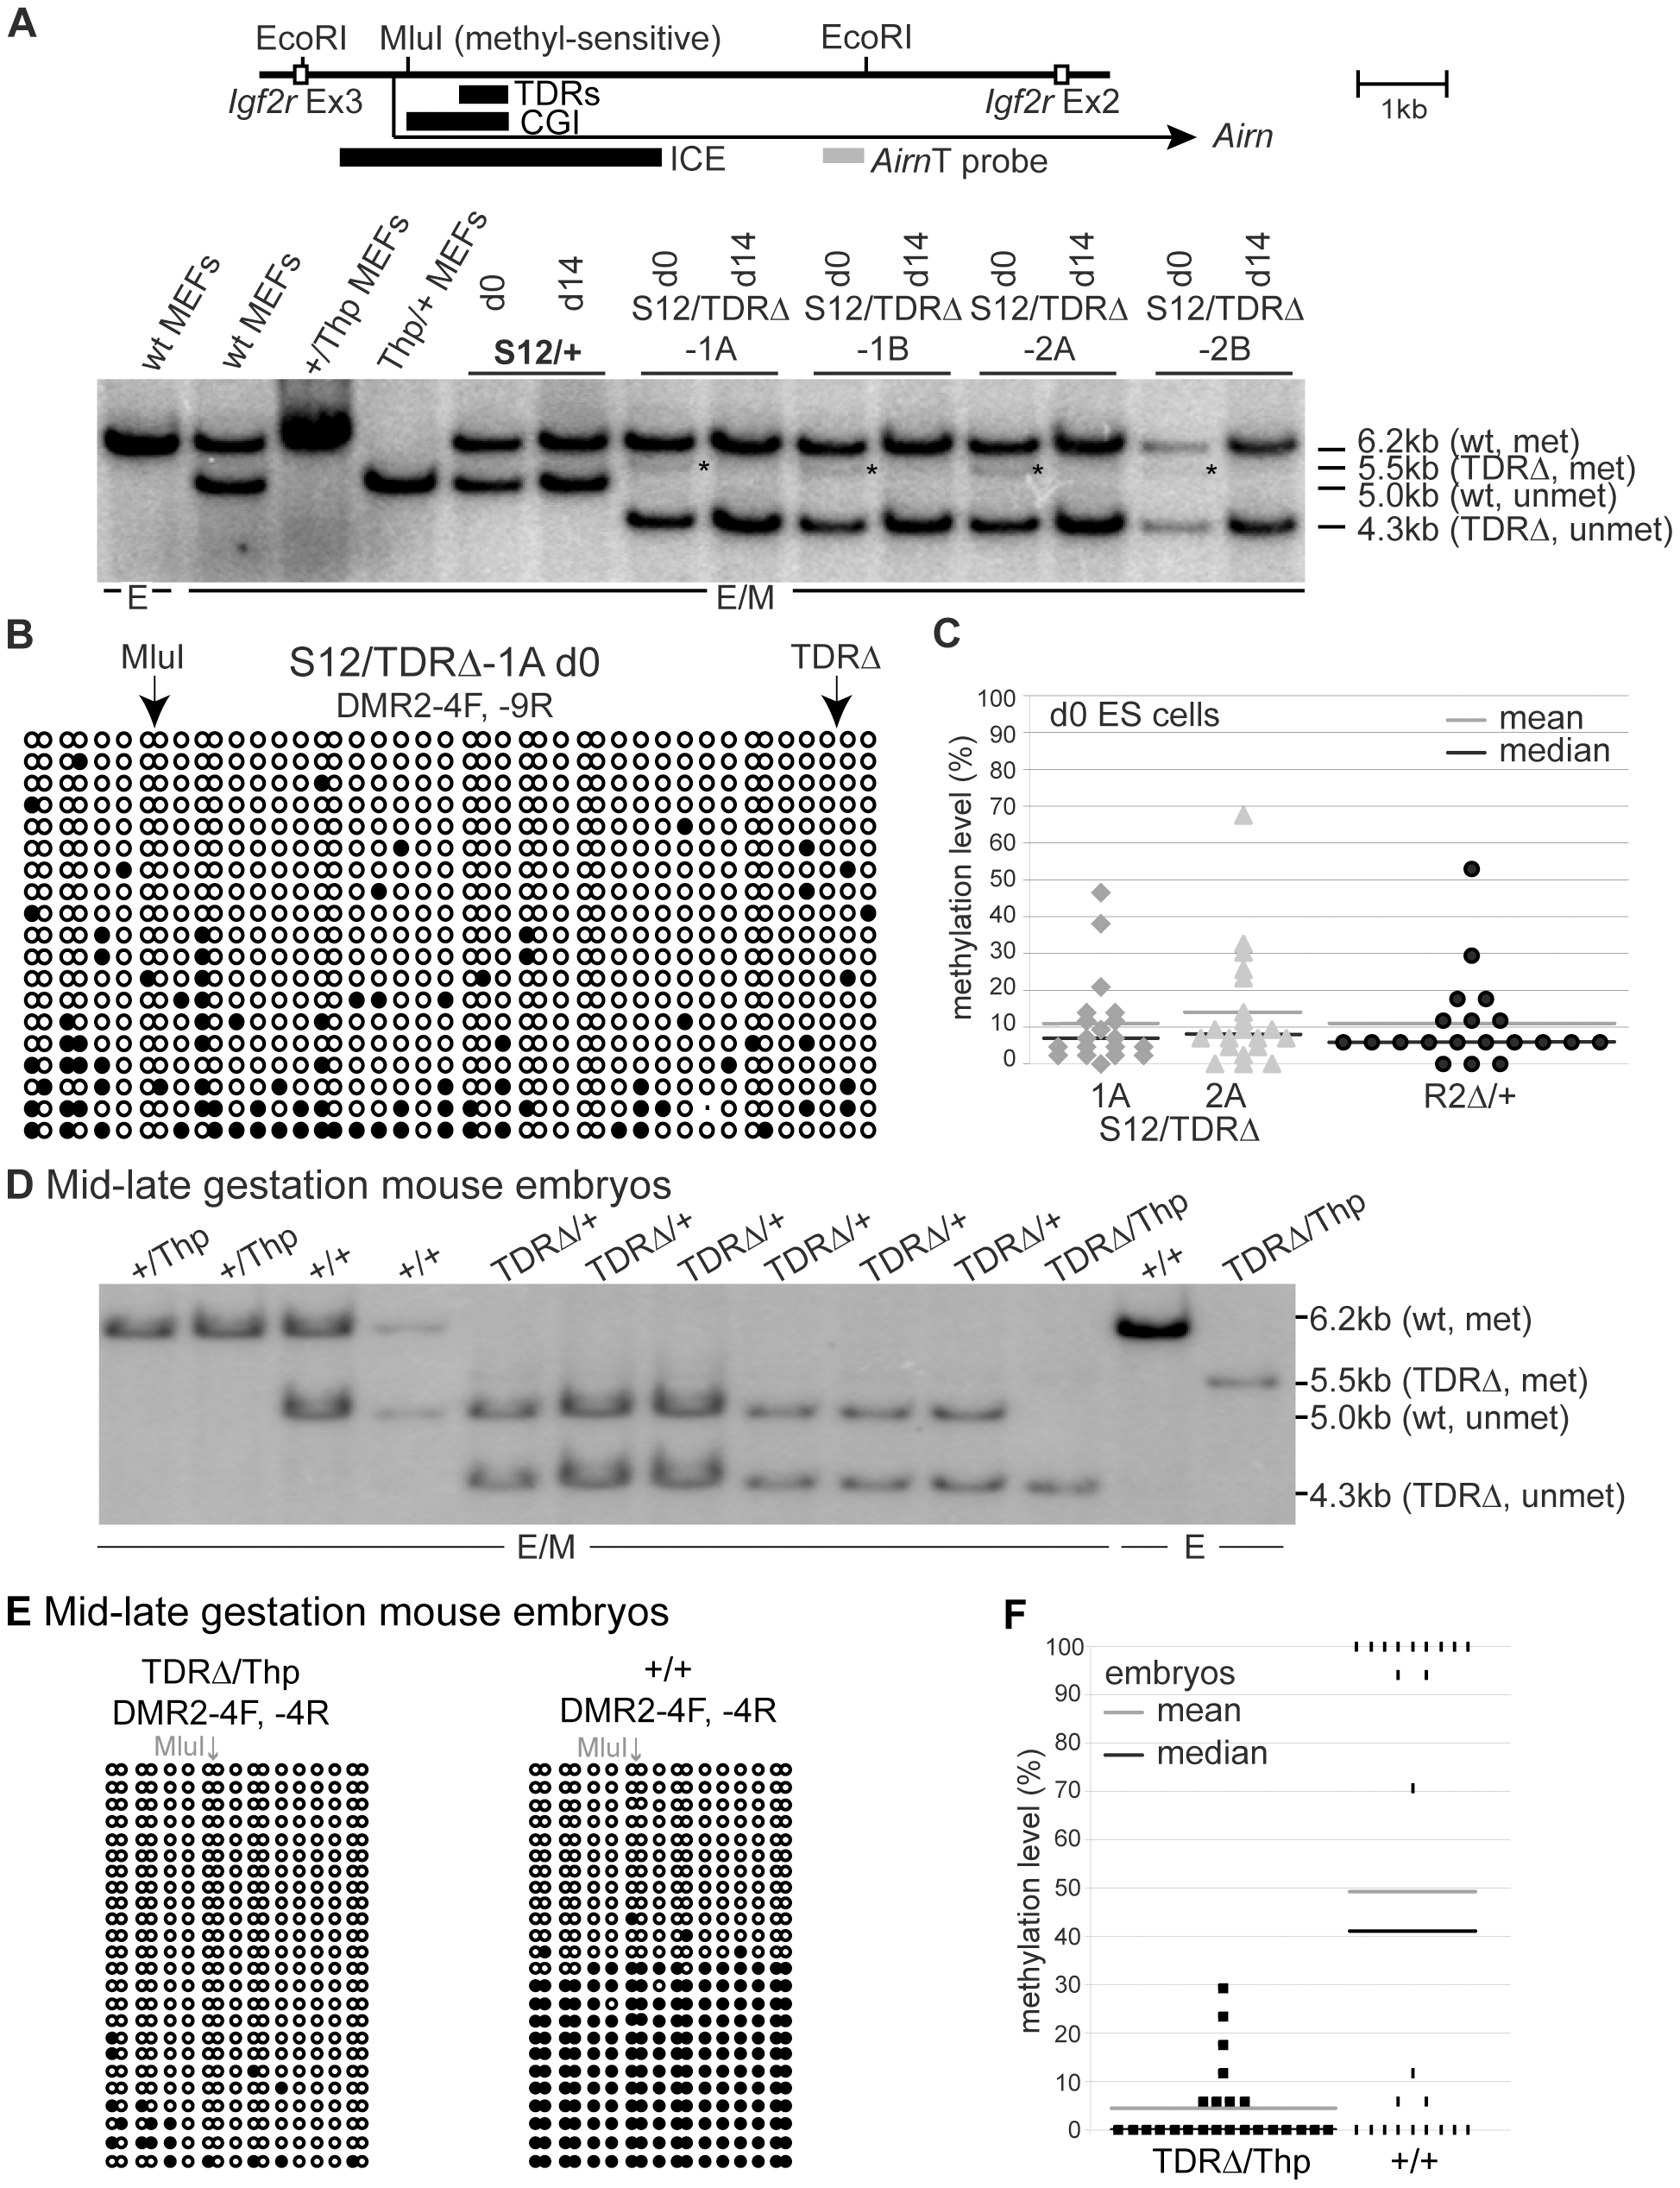 TDRs are required for the regulation of ICE DNA methylation.